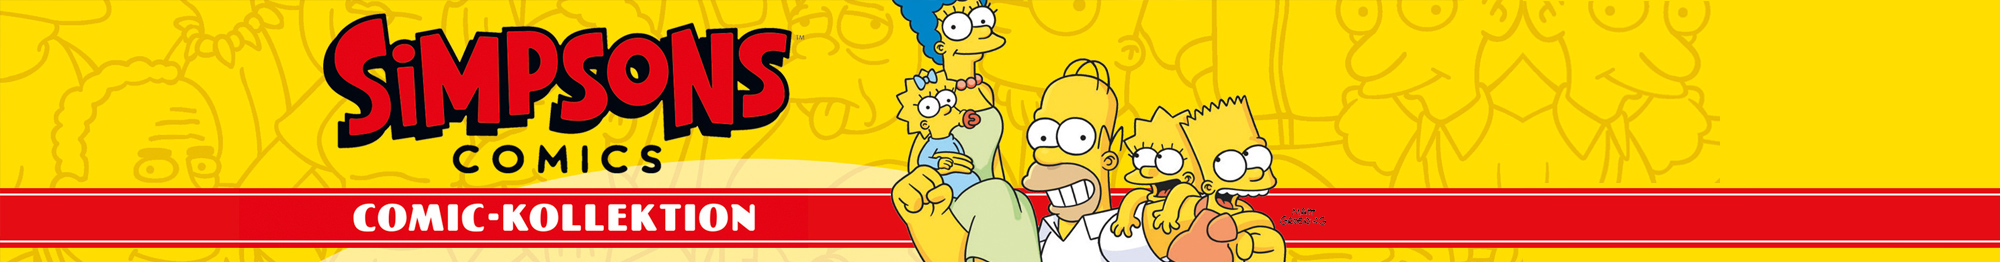 simpsons-pw-headerw6fiFUfyS3w70